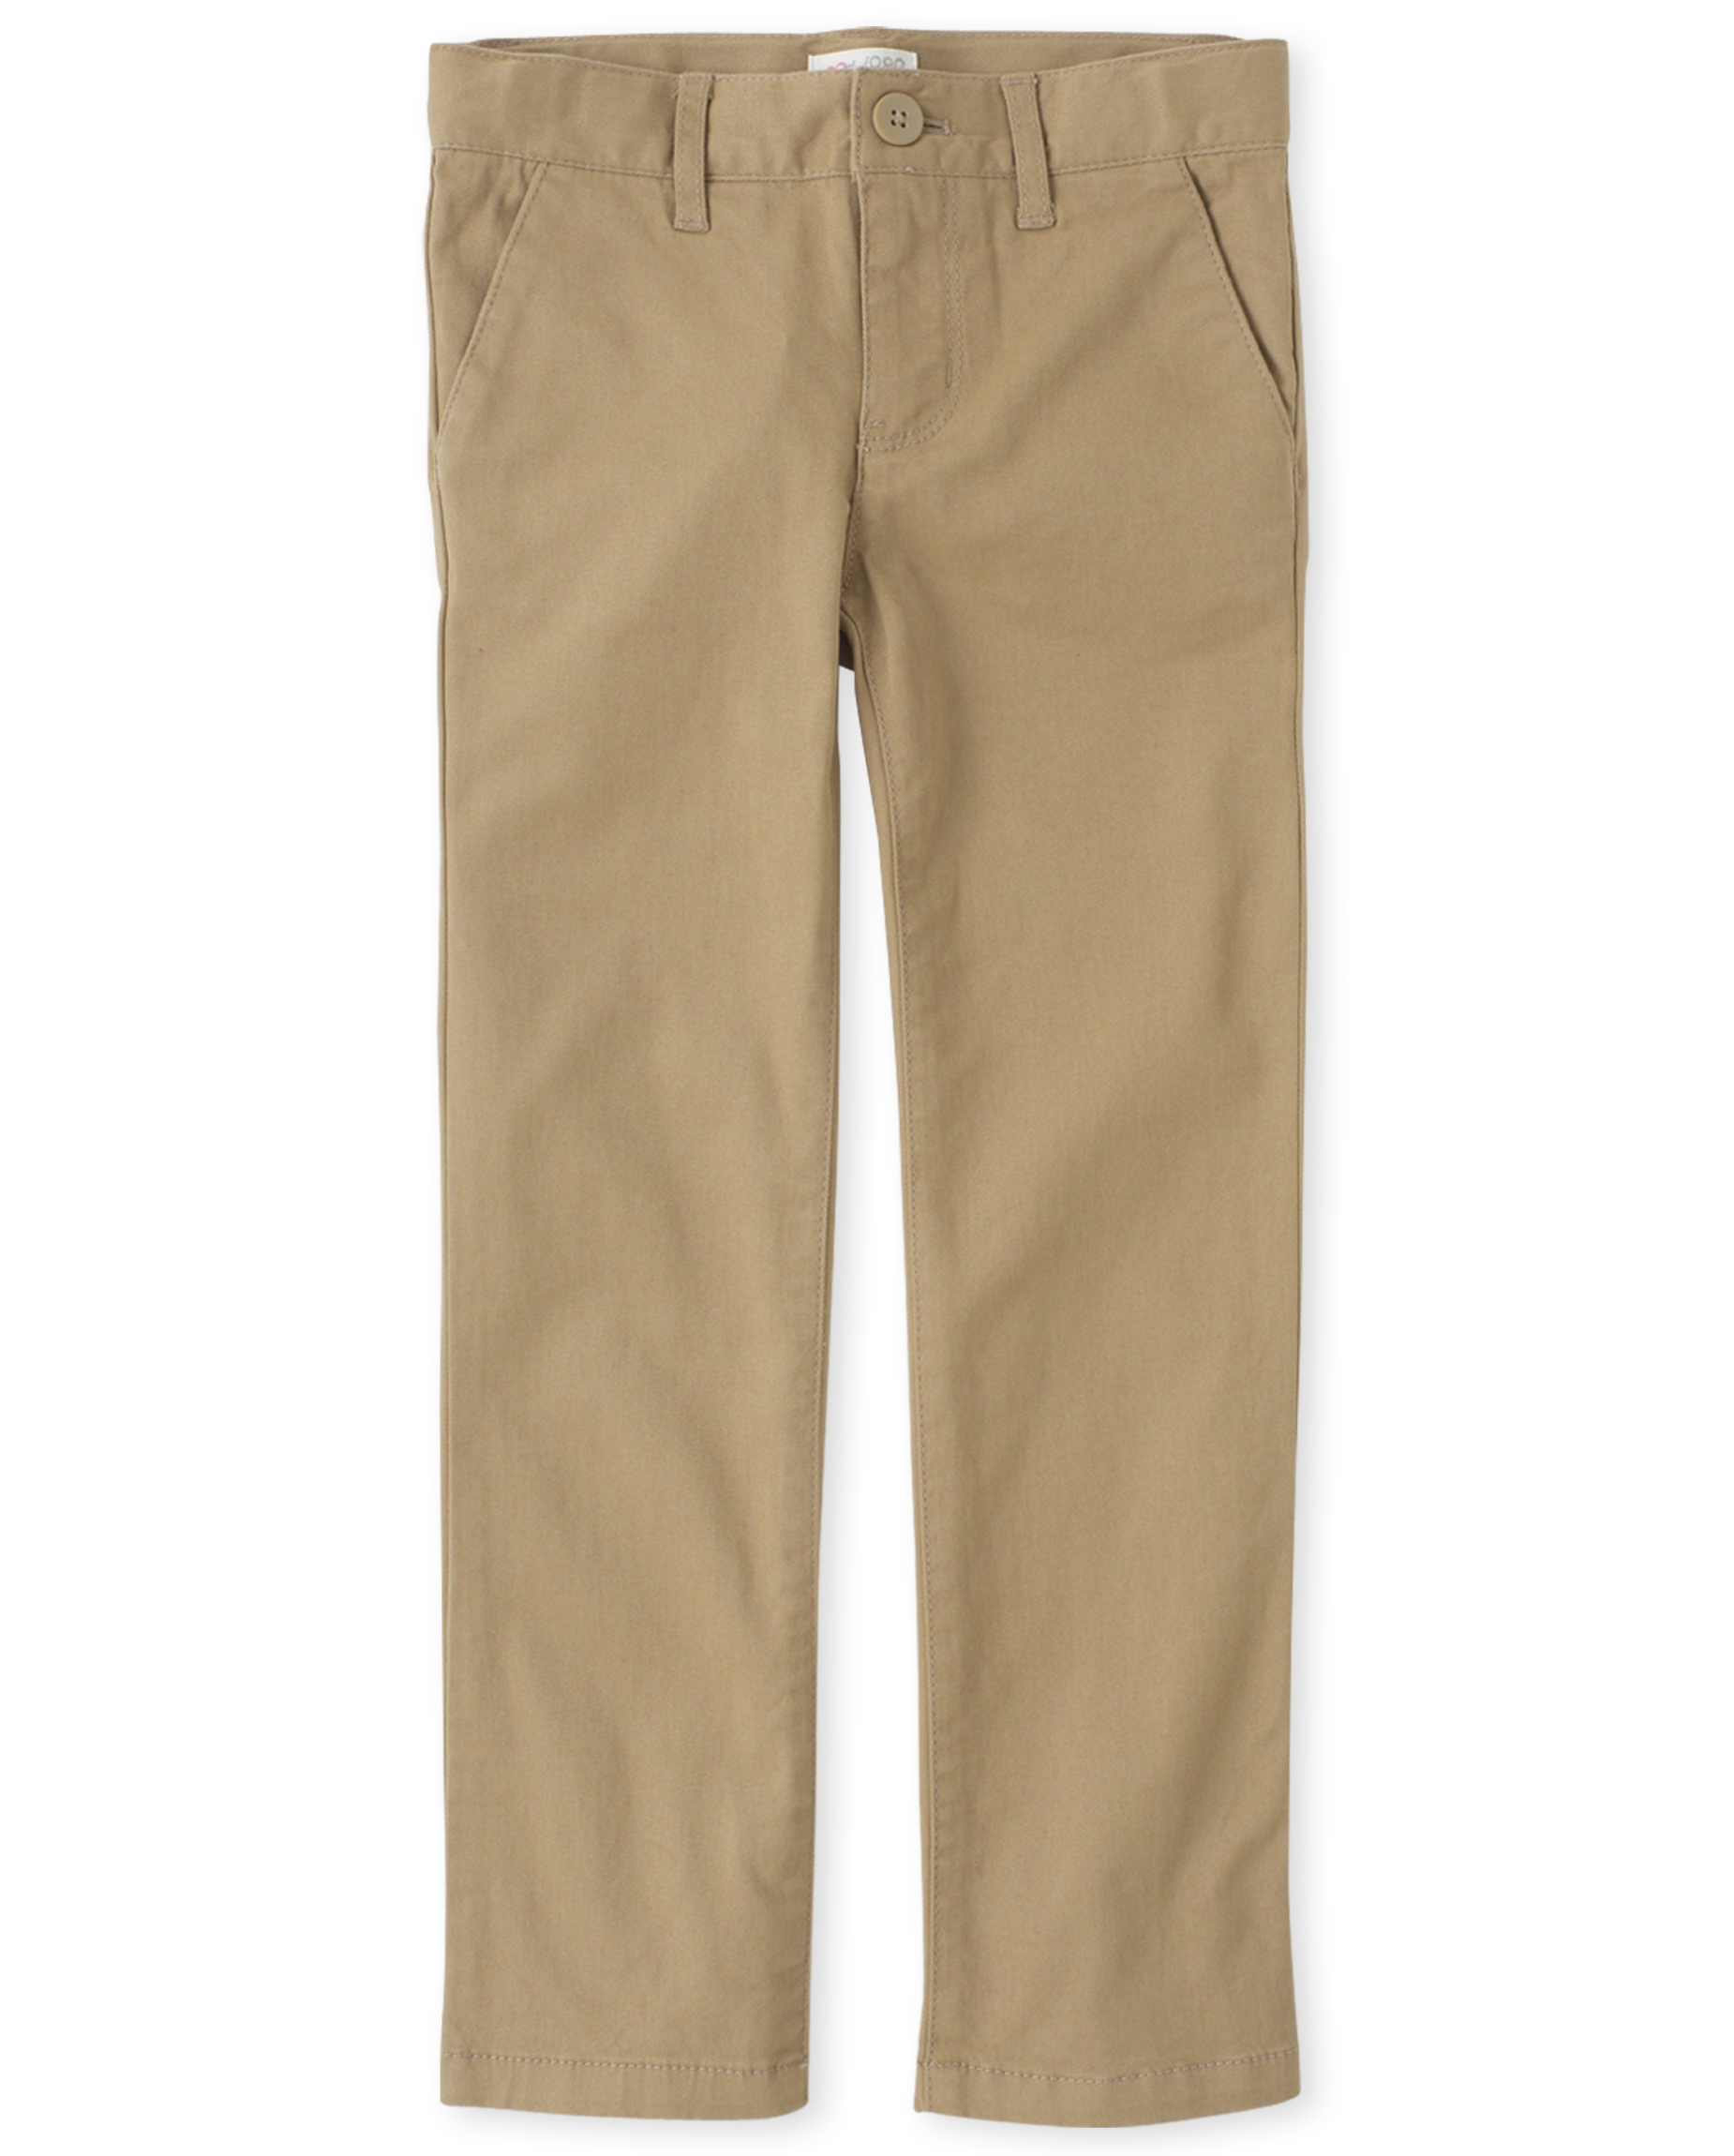 BISQUIT 6S The Childrens Place Girls U SLM BOOT PANT